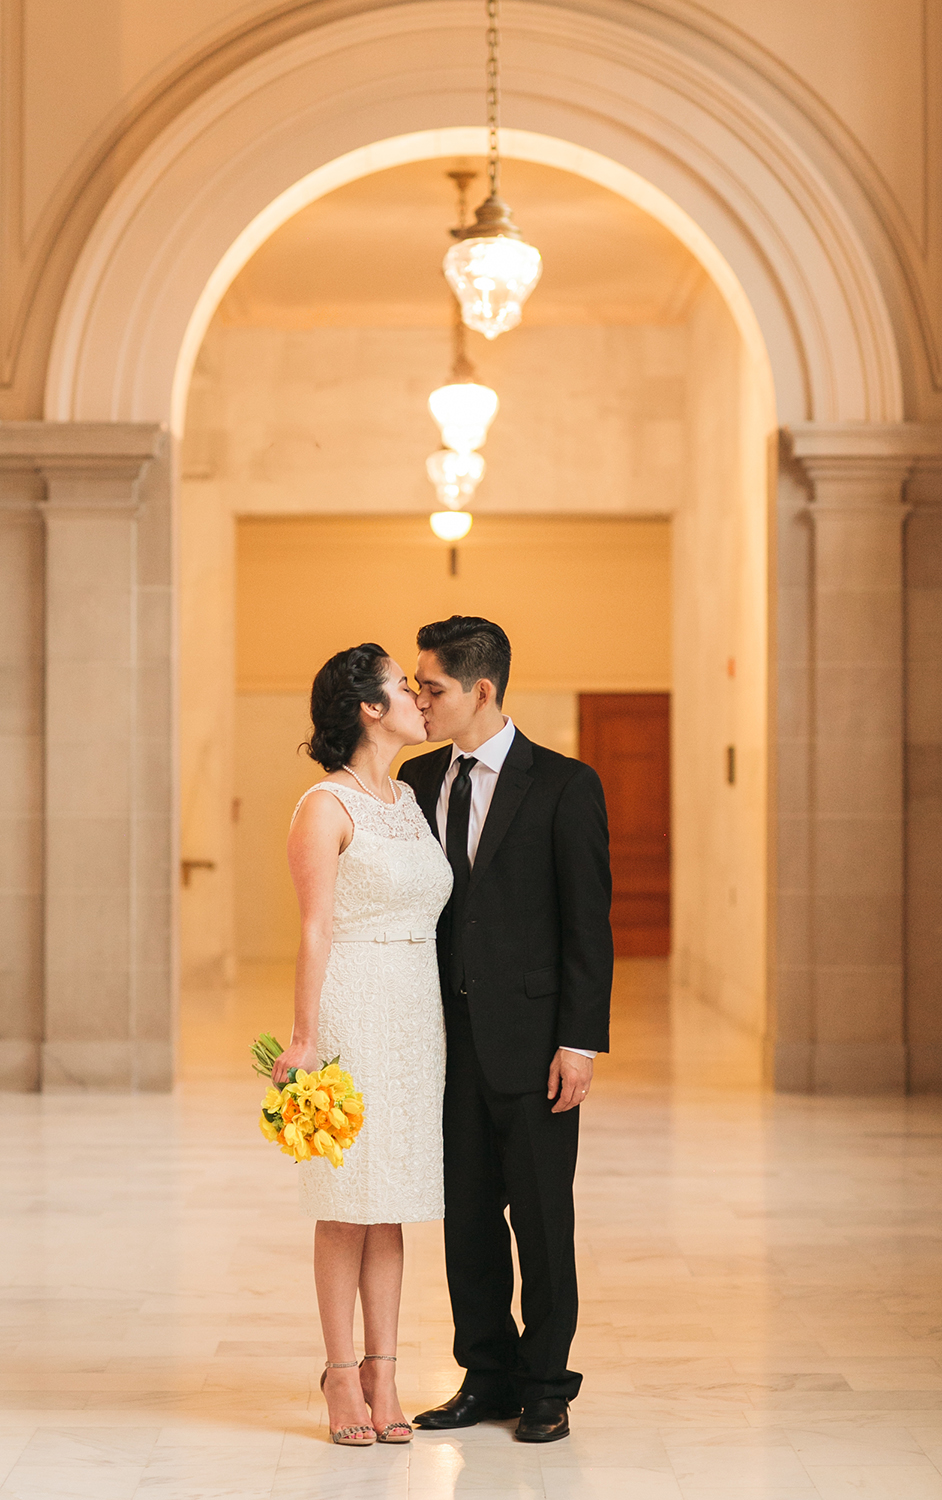 wedding-at-san-francisco-city-hall-03.html